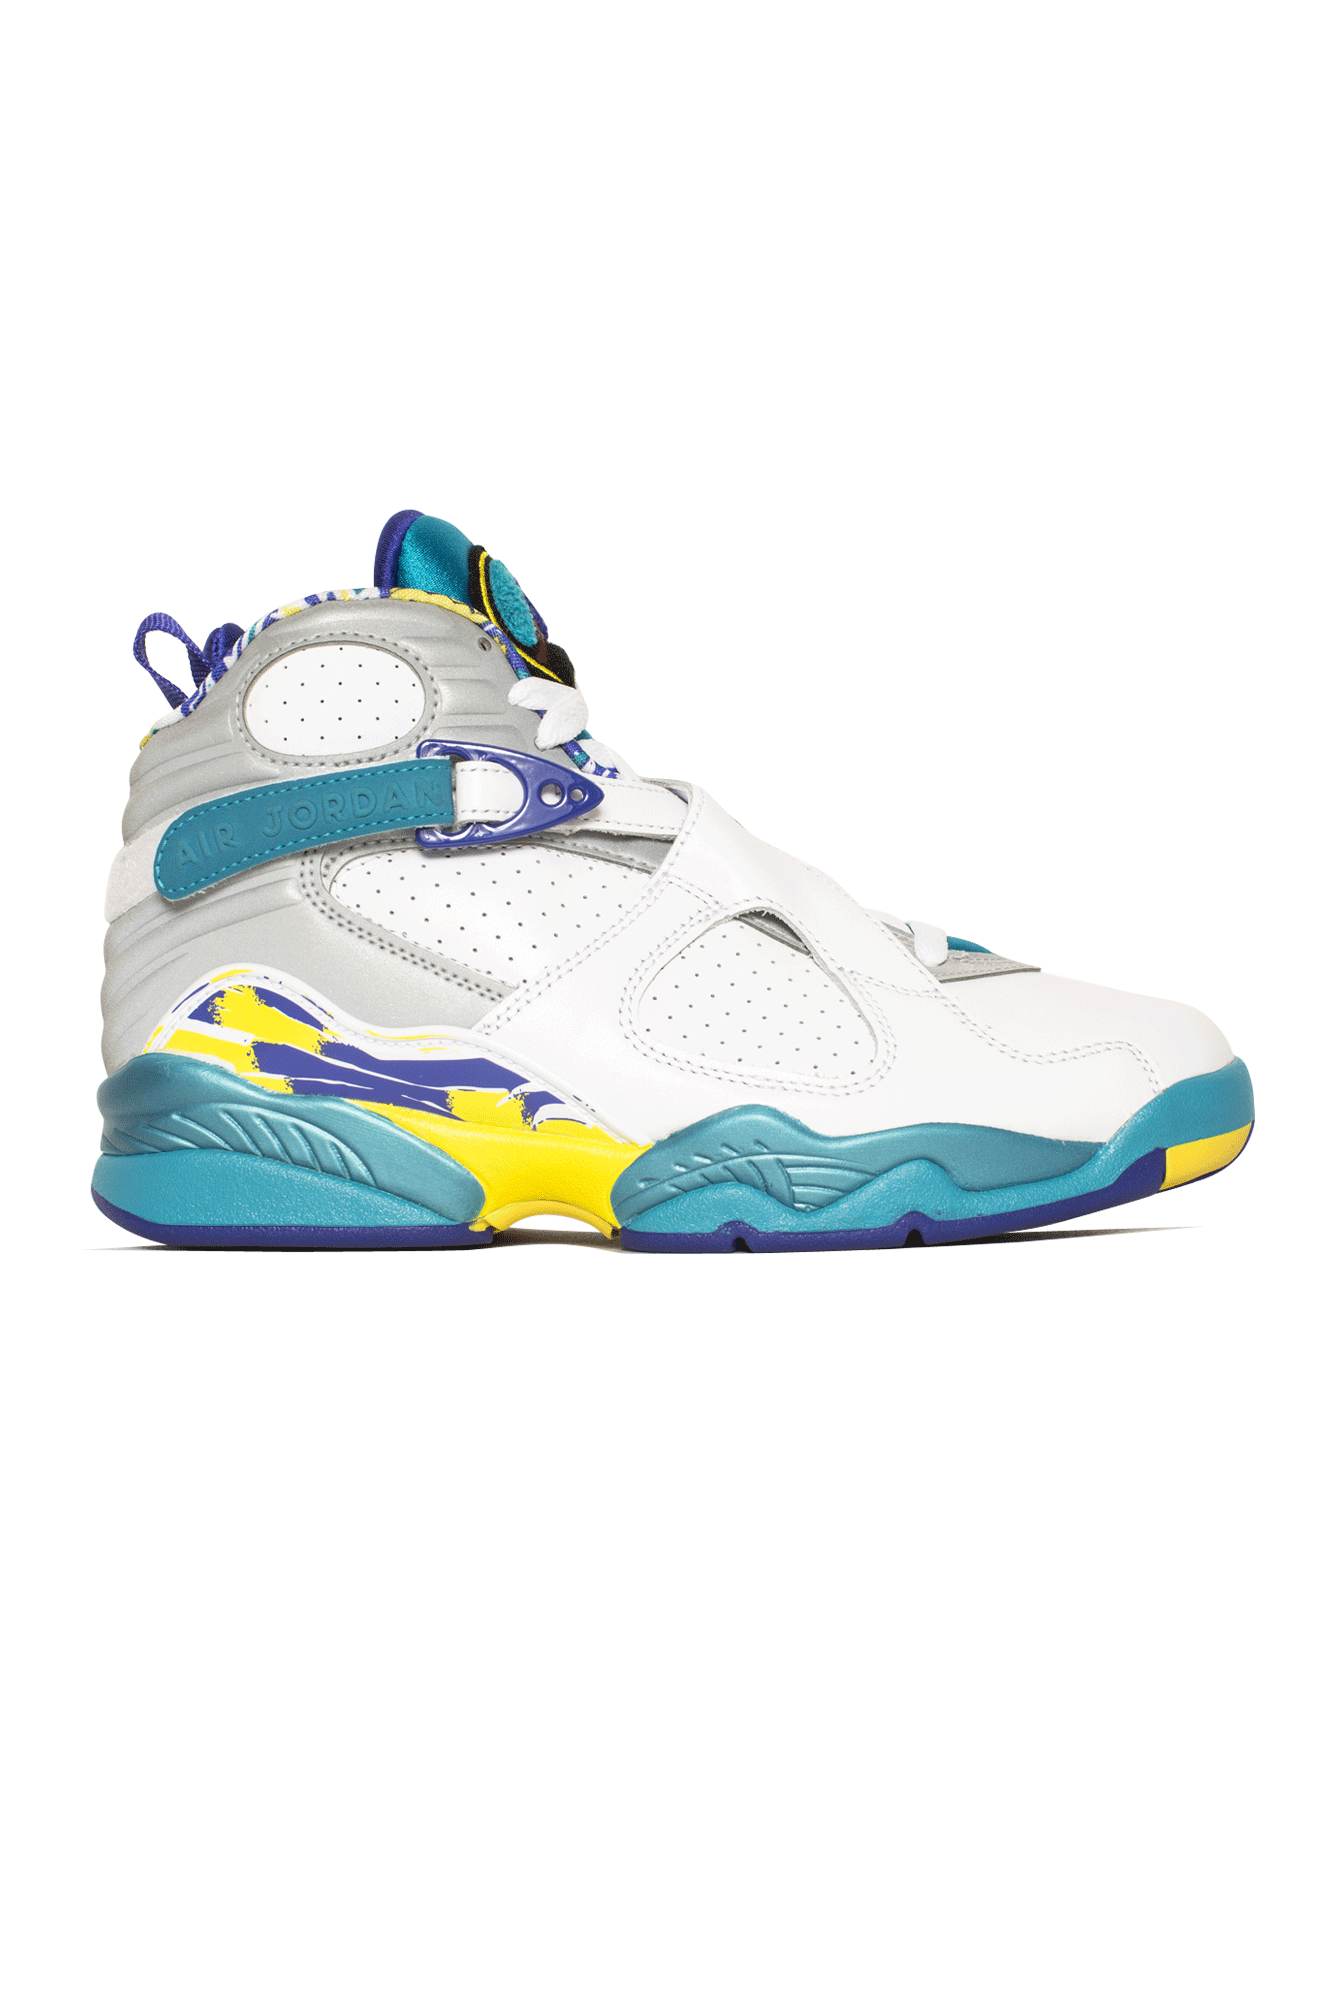 Sneakers Air Jordan Wmns Air Jordan 8 Retro White - One Block Down